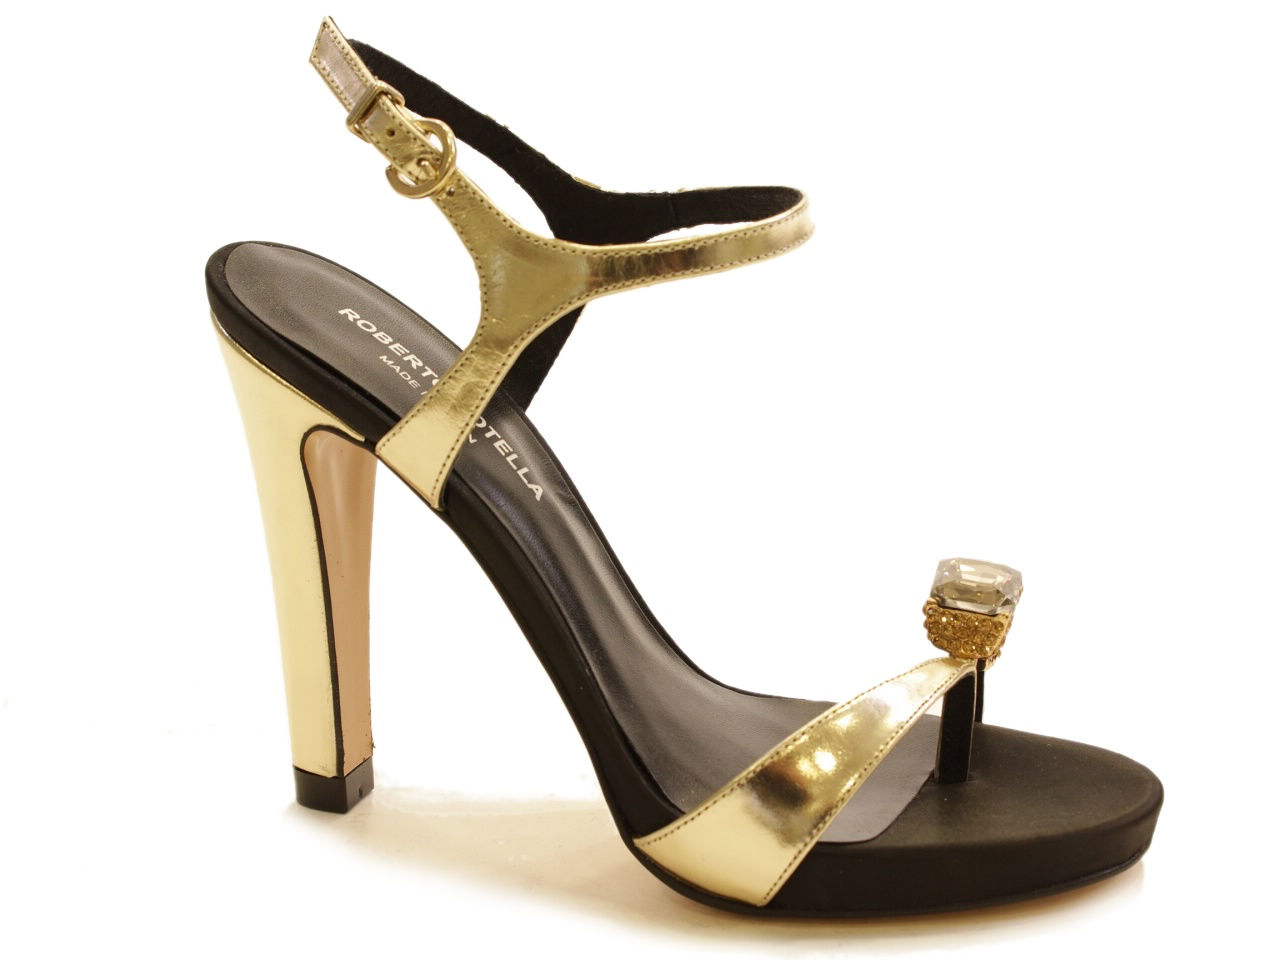 Heel Sandals Roberto Botella - 387 M14408